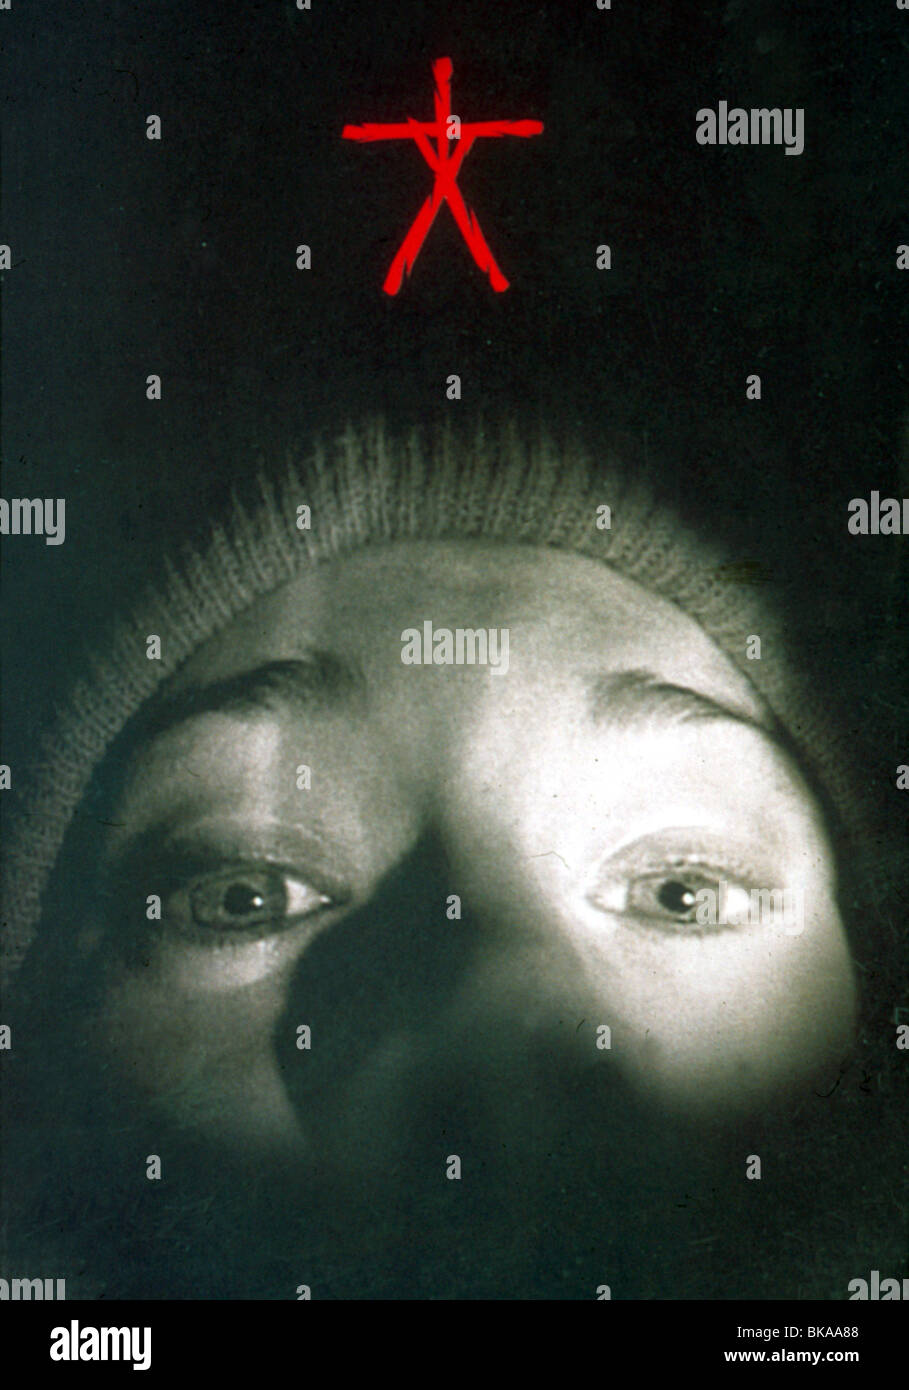 THE BLAIR WITCH PROJECT (1999) POSTER BWP 061 - Stock Image